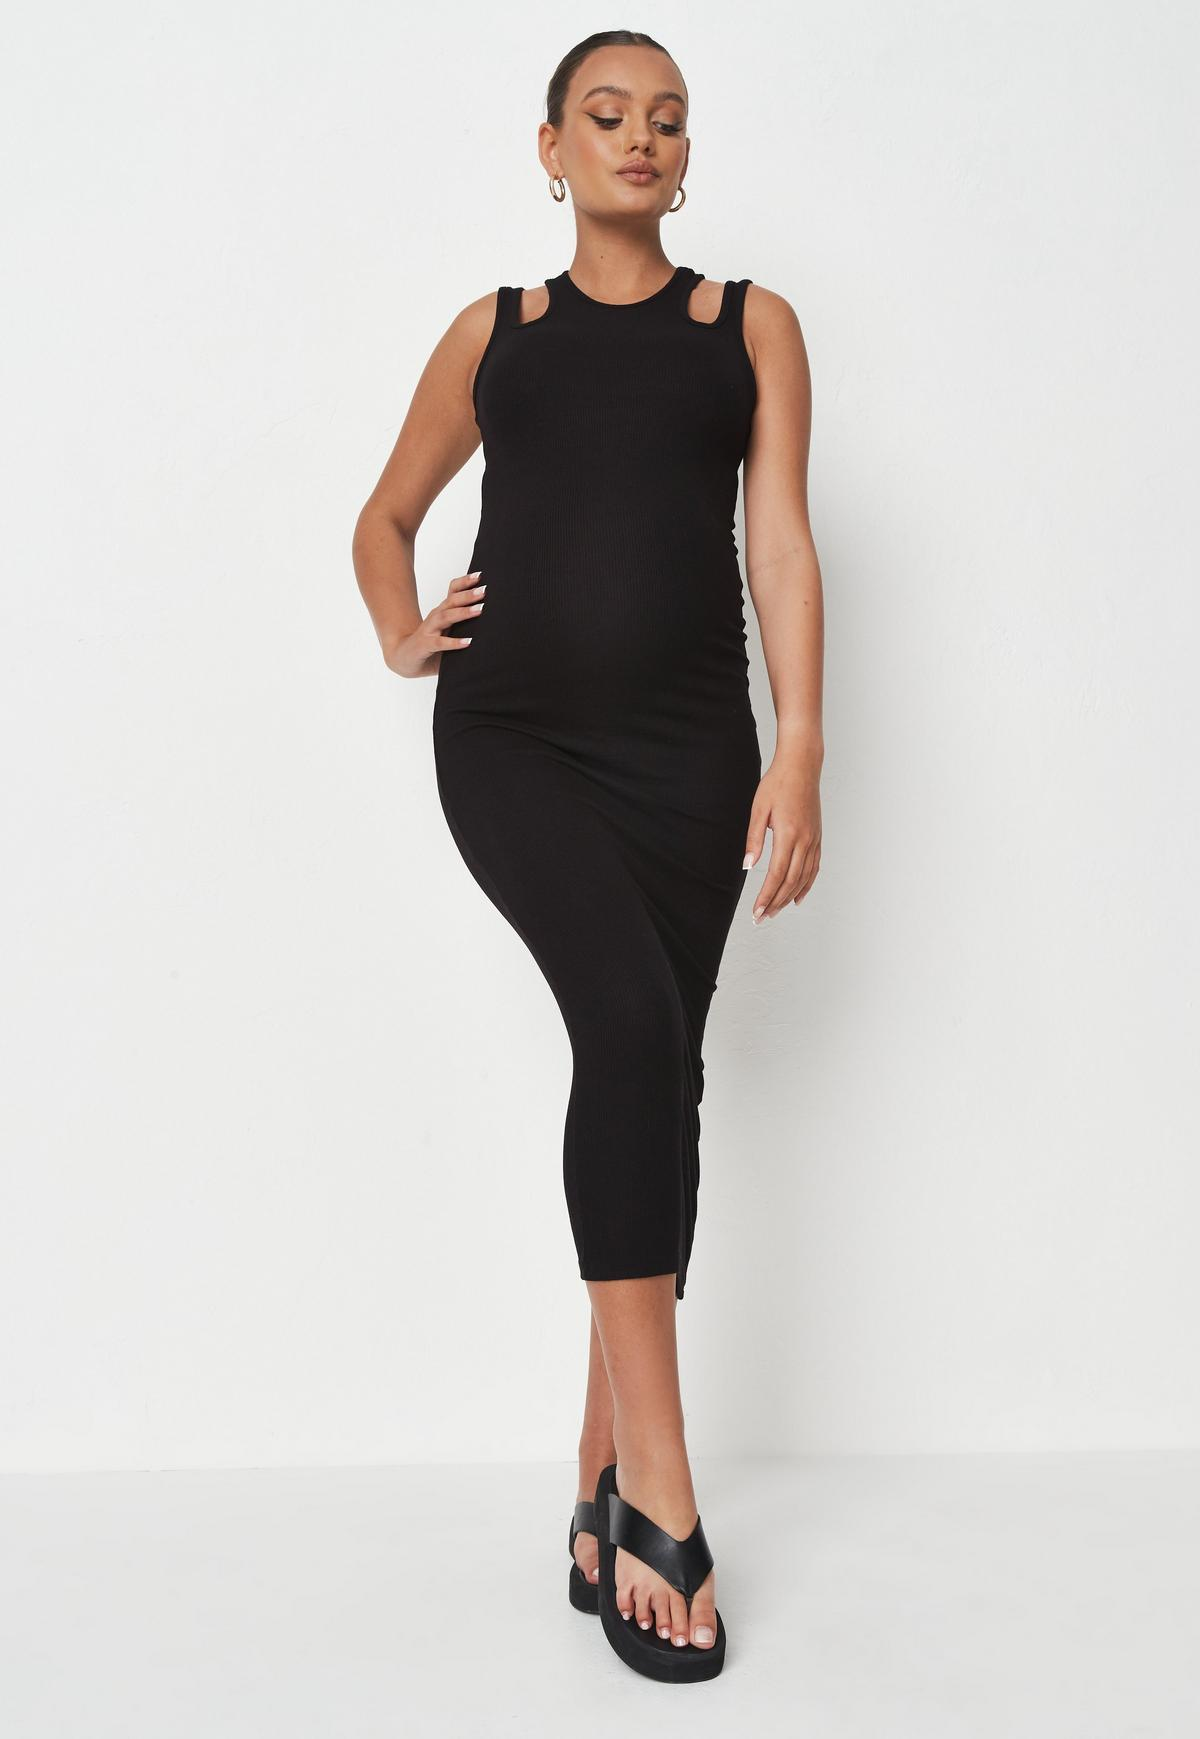 Lukalula Maternity Sexy Low Round Neck Solid Dress